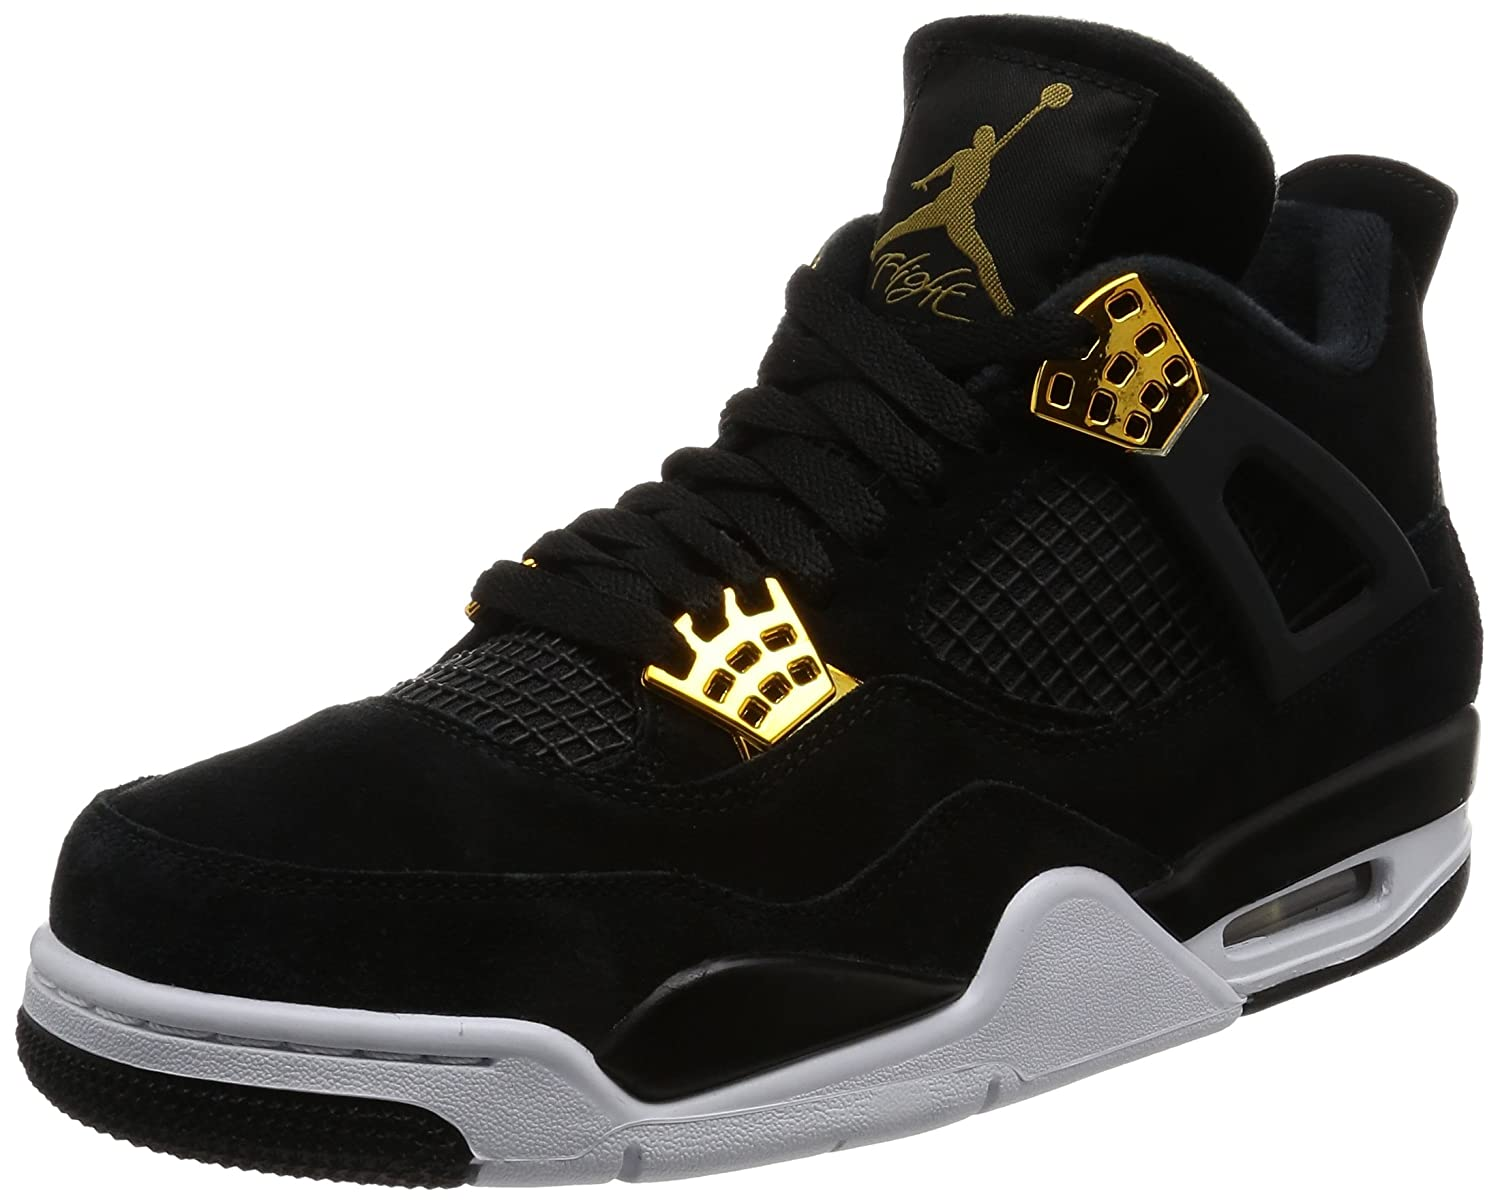 91d1e554a02c6f Nike Air Jordan 4 Retro Royalty - Black Metallic Gold-White Trainer   Amazon.co.uk  Shoes   Bags